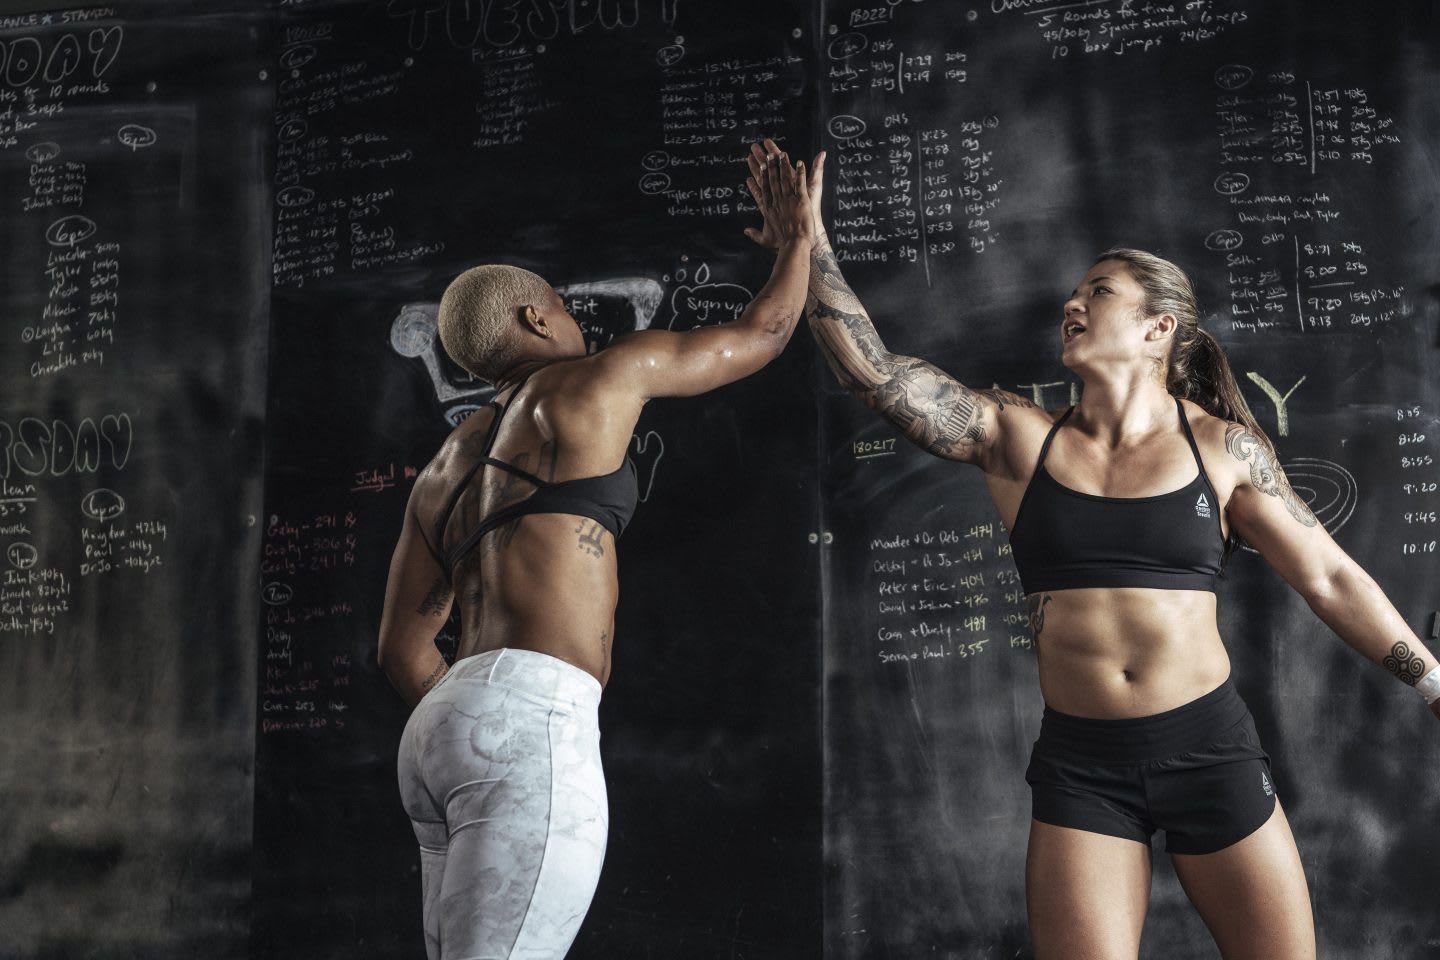 Girls high-fiving each other after doing a sports workout, achievement, success, motivation, emotional strength, passion, Reebok, CrossFit, athlete, sports marketing, GamePlan A